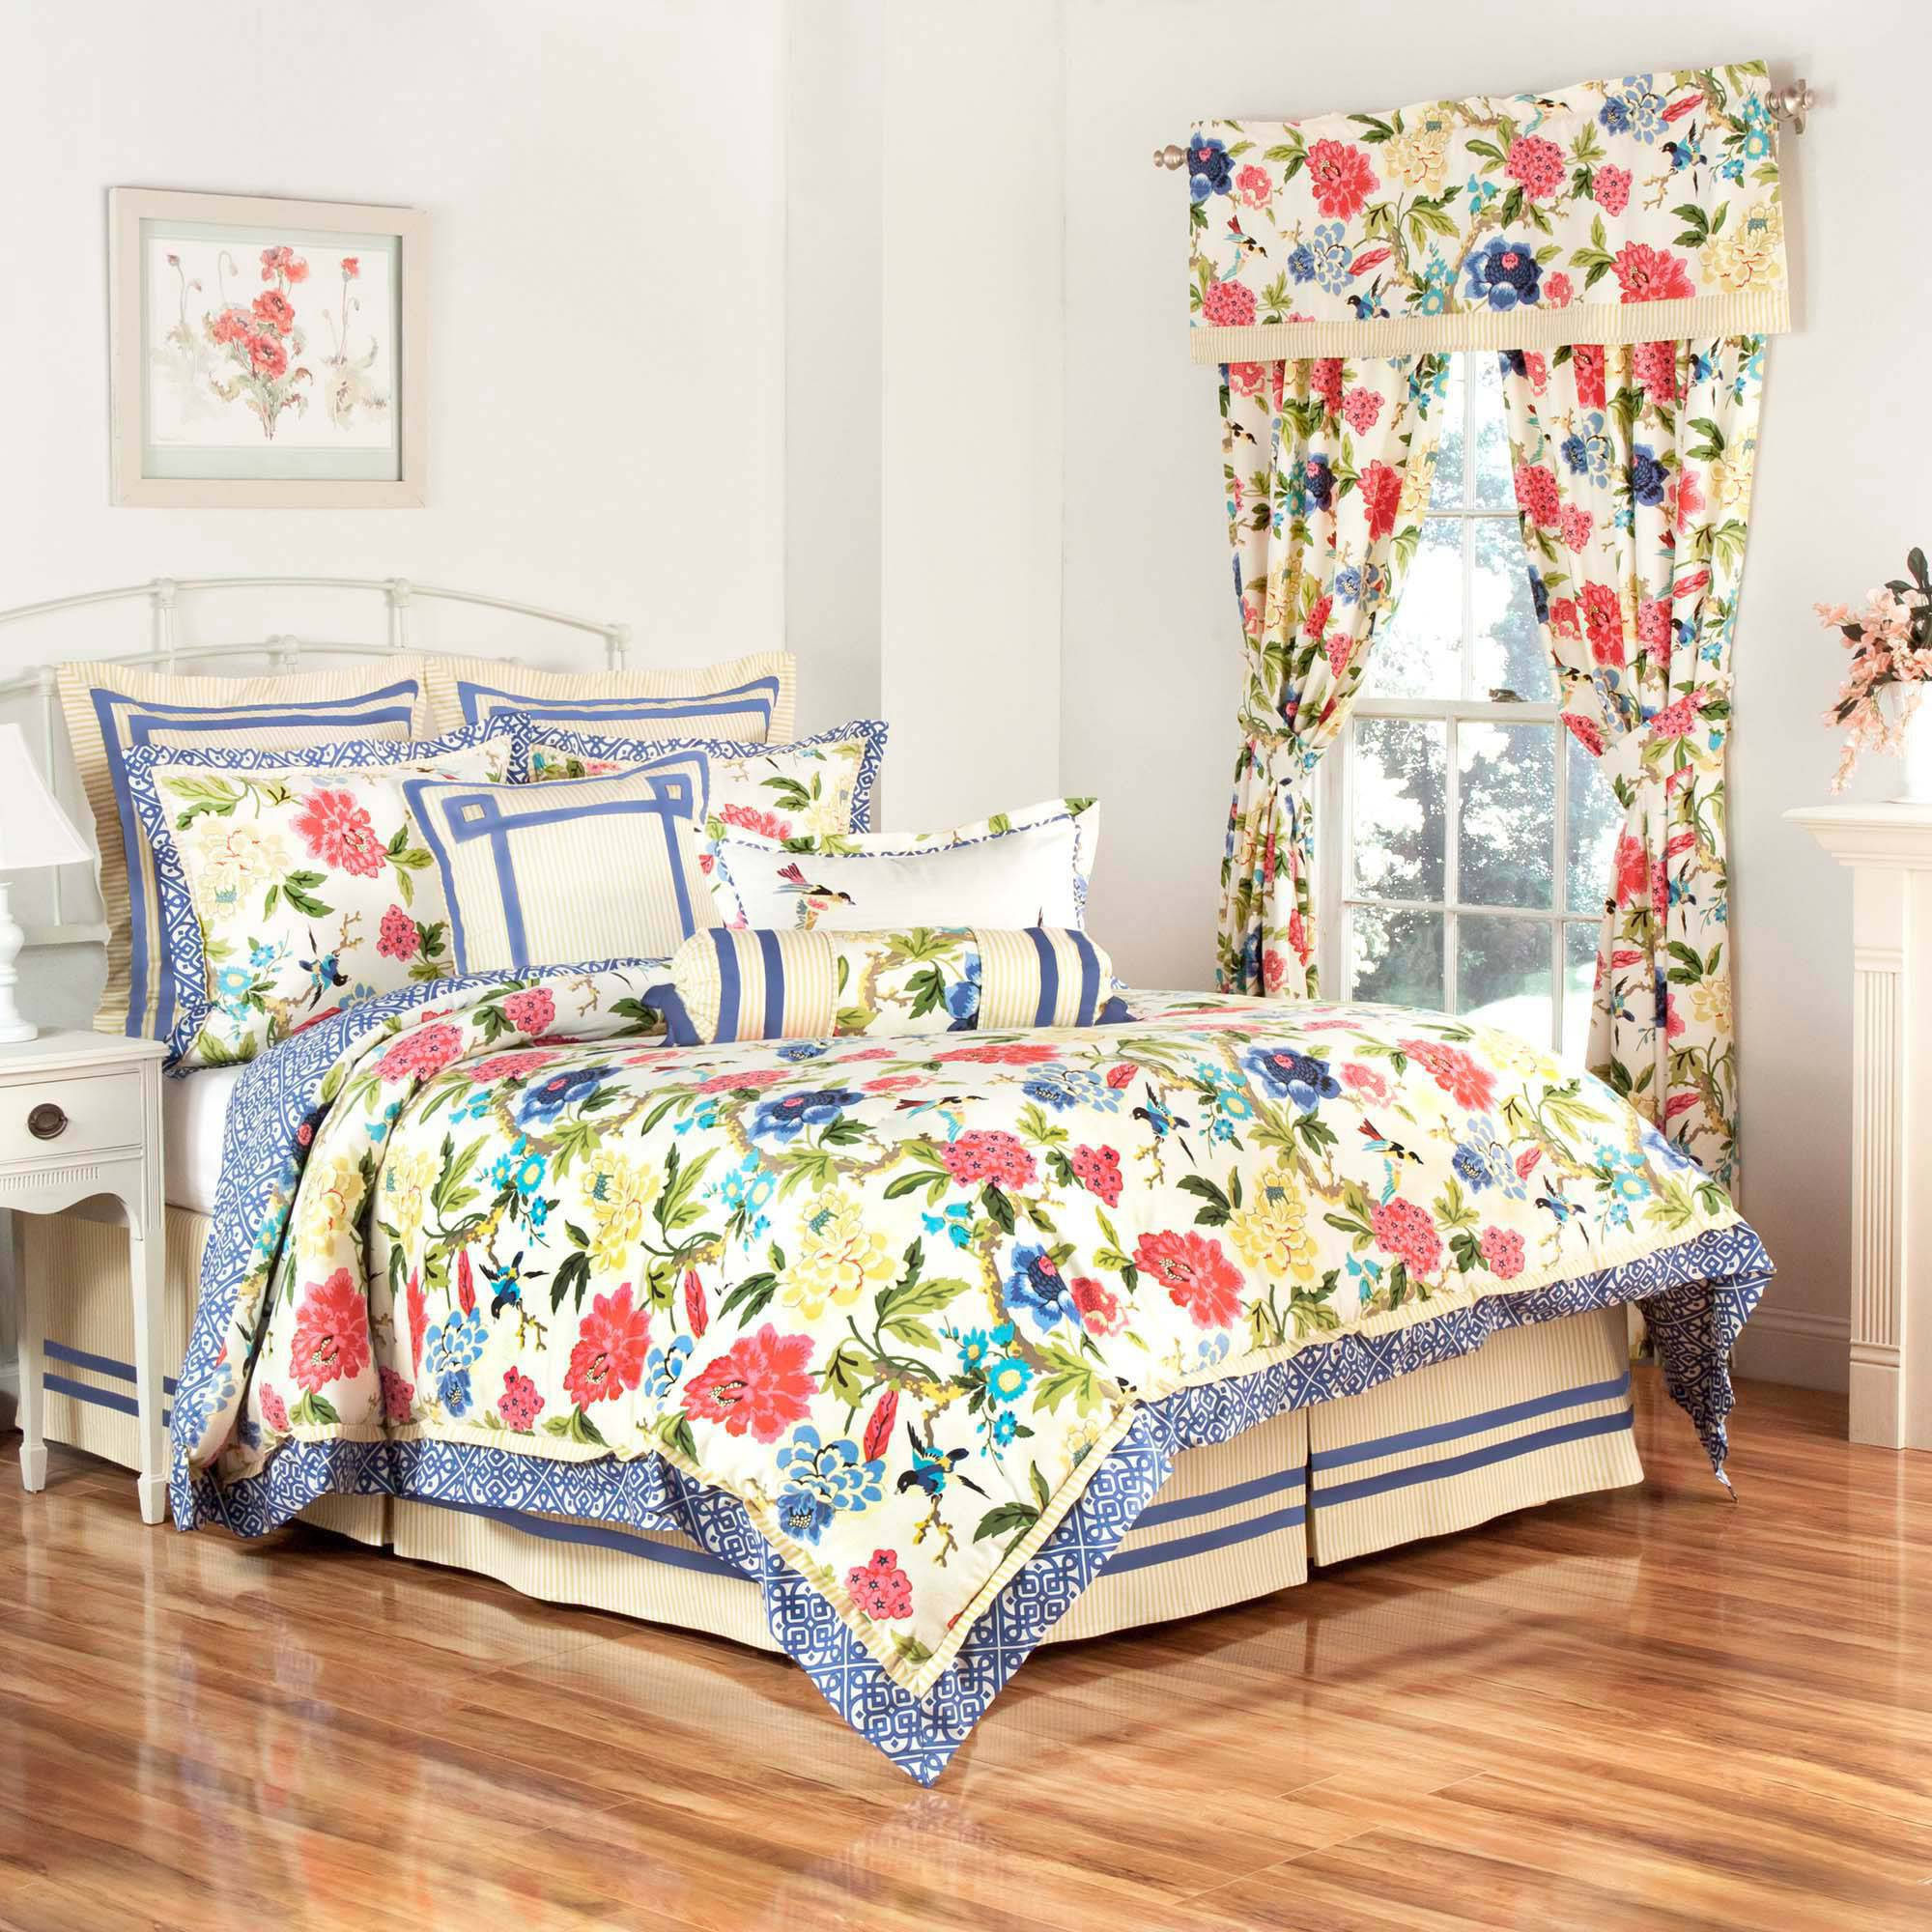 Charmed 4-Piece King Comforter Set